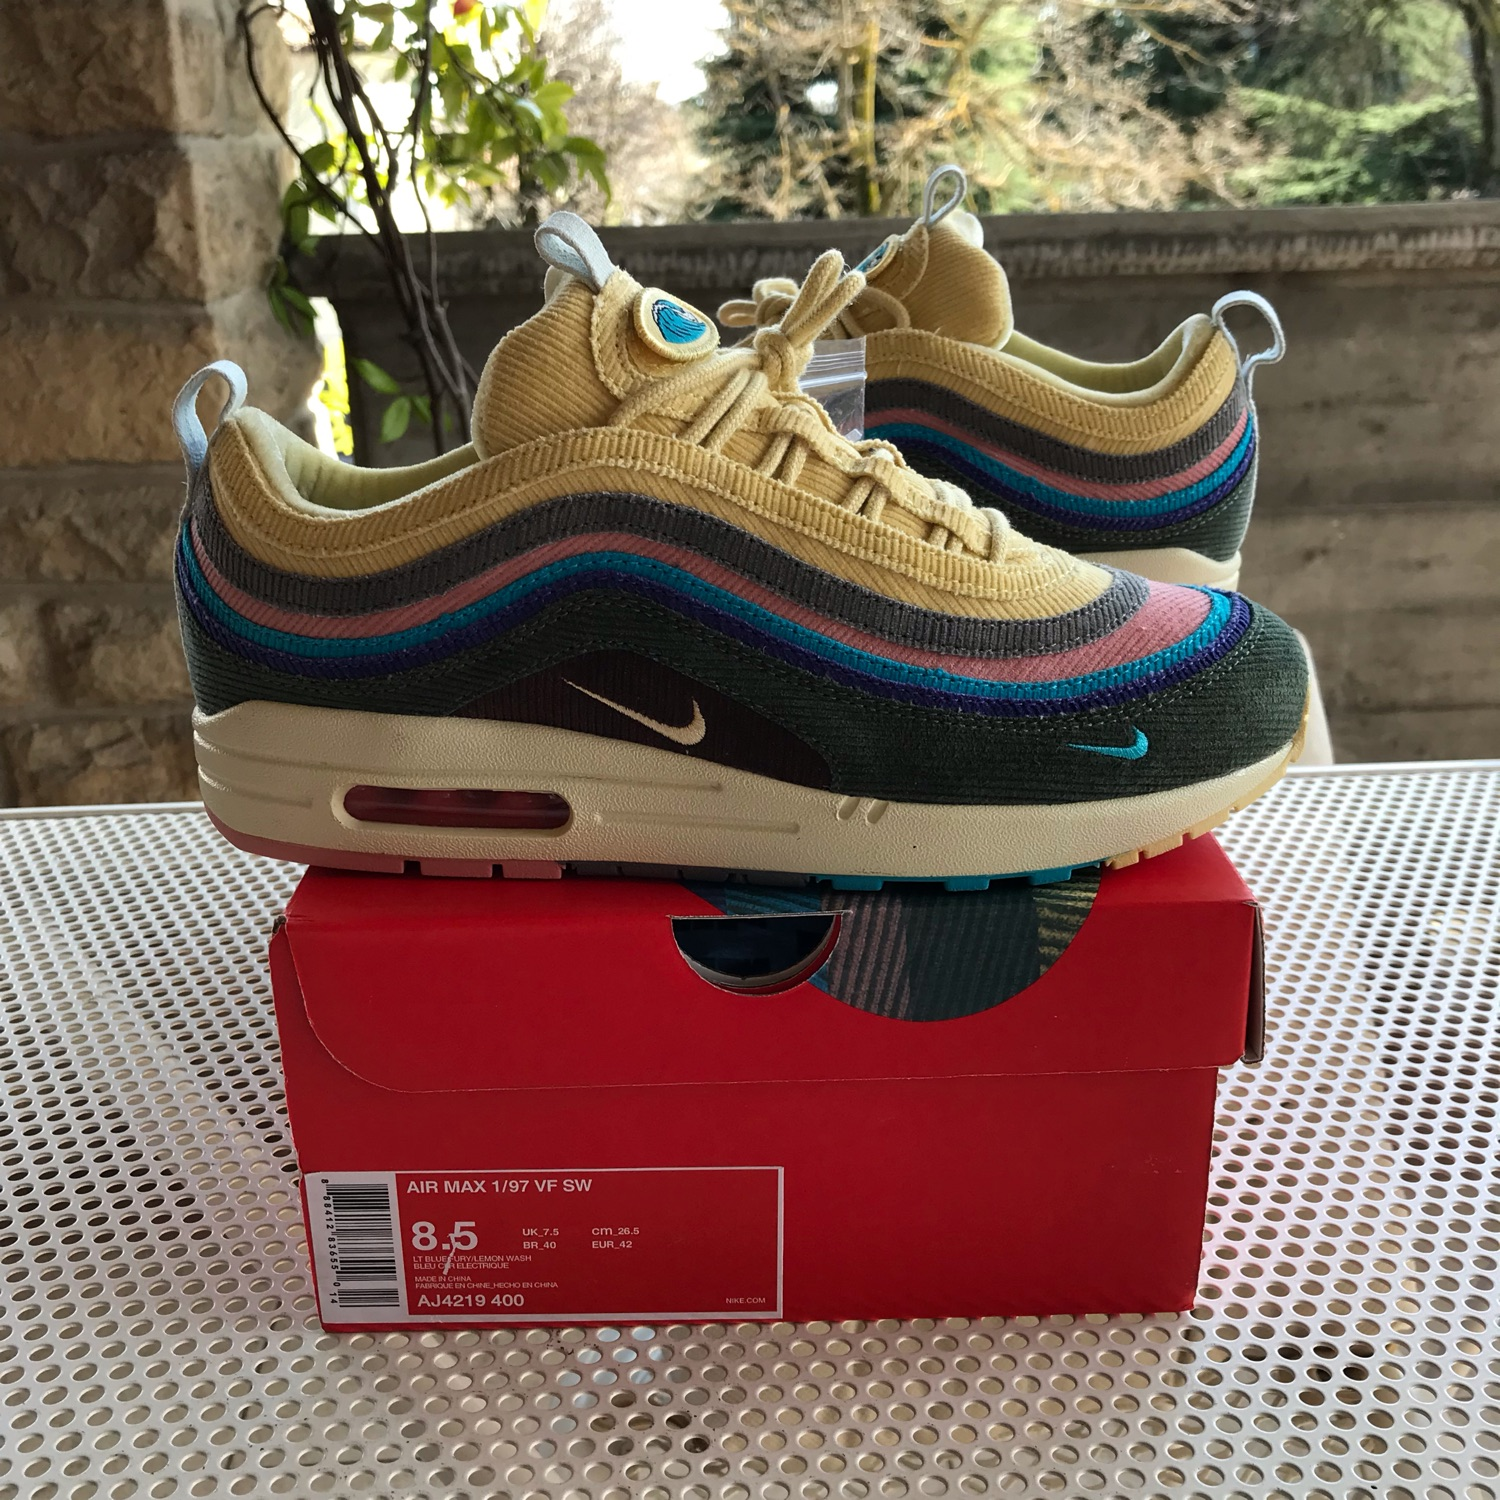 Nike Sean Wotherspoon Air Max 197 VF SW Size 8.5 NWT